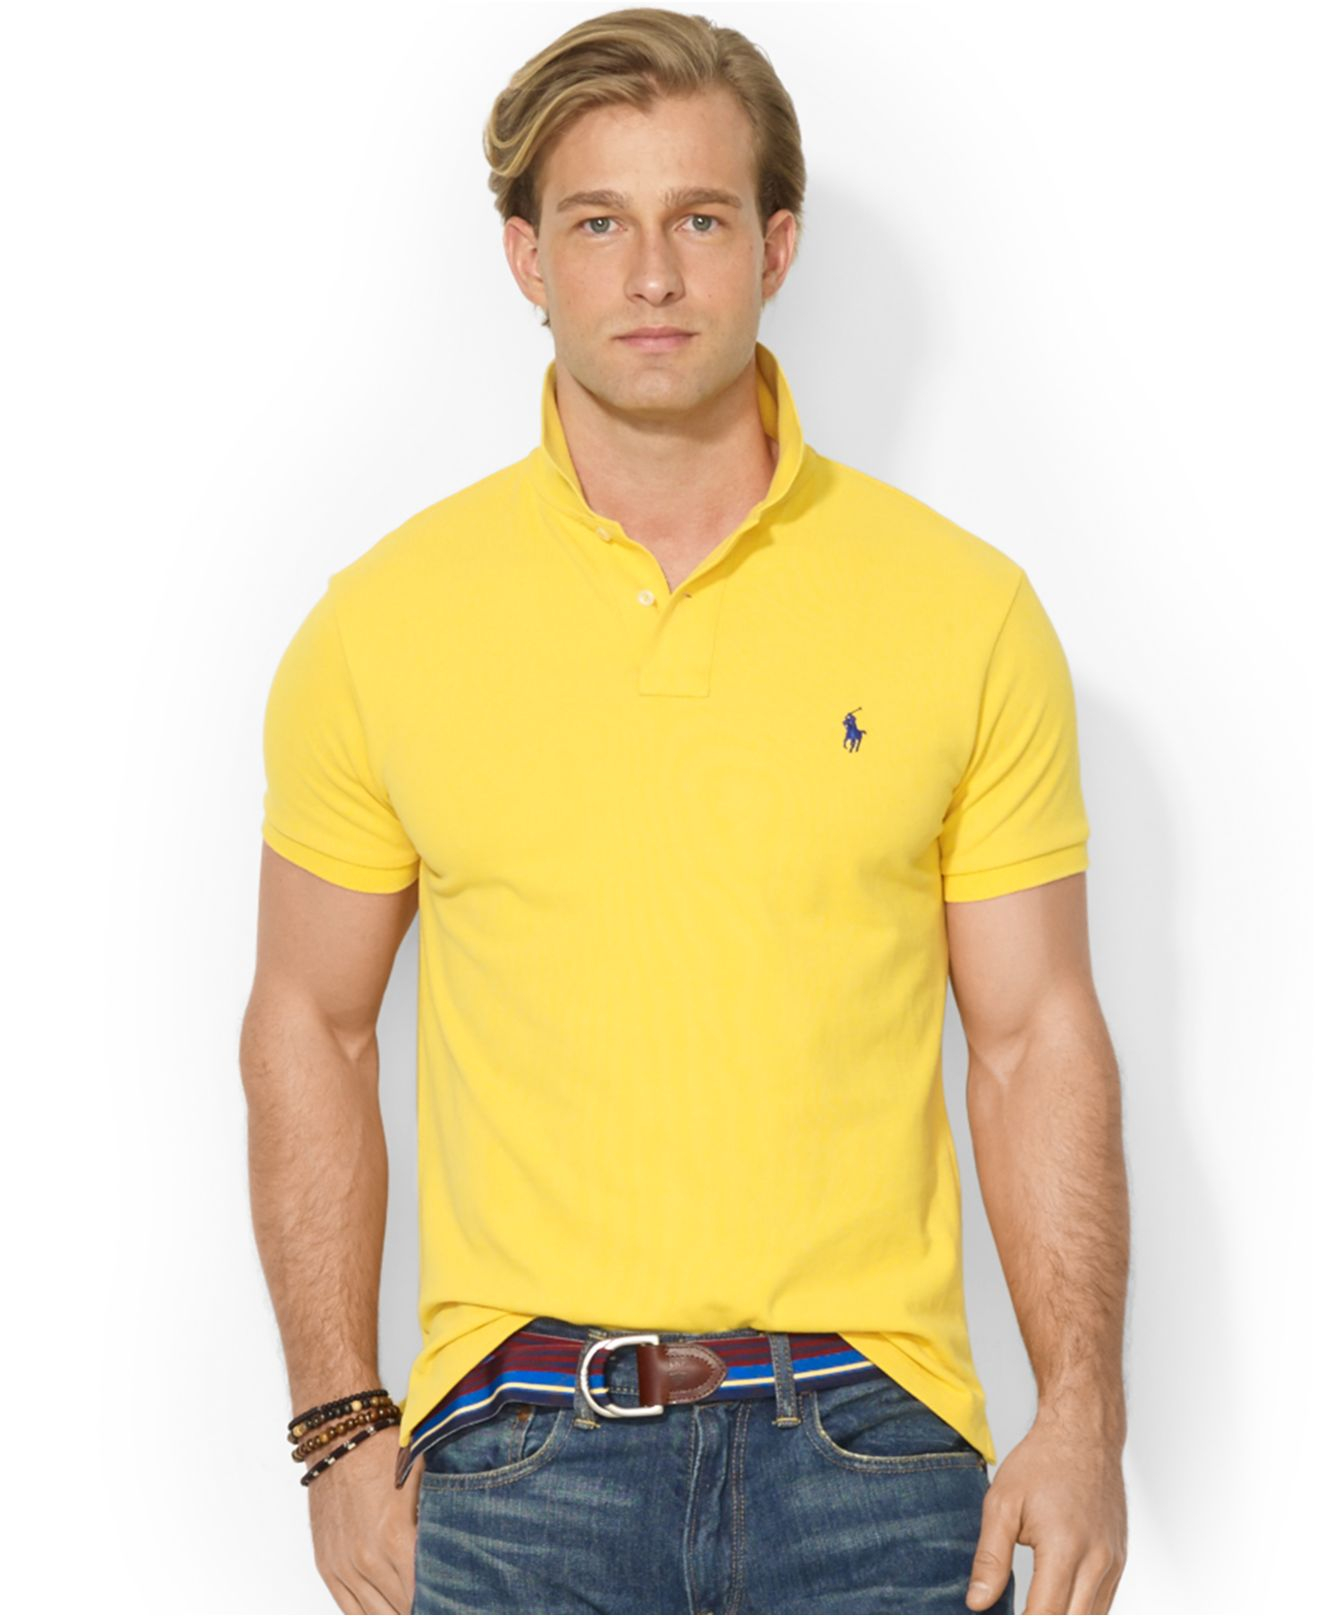 601a39758068d Lyst - Polo Ralph Lauren Custom-Fit Mesh Polo in Yellow for Men